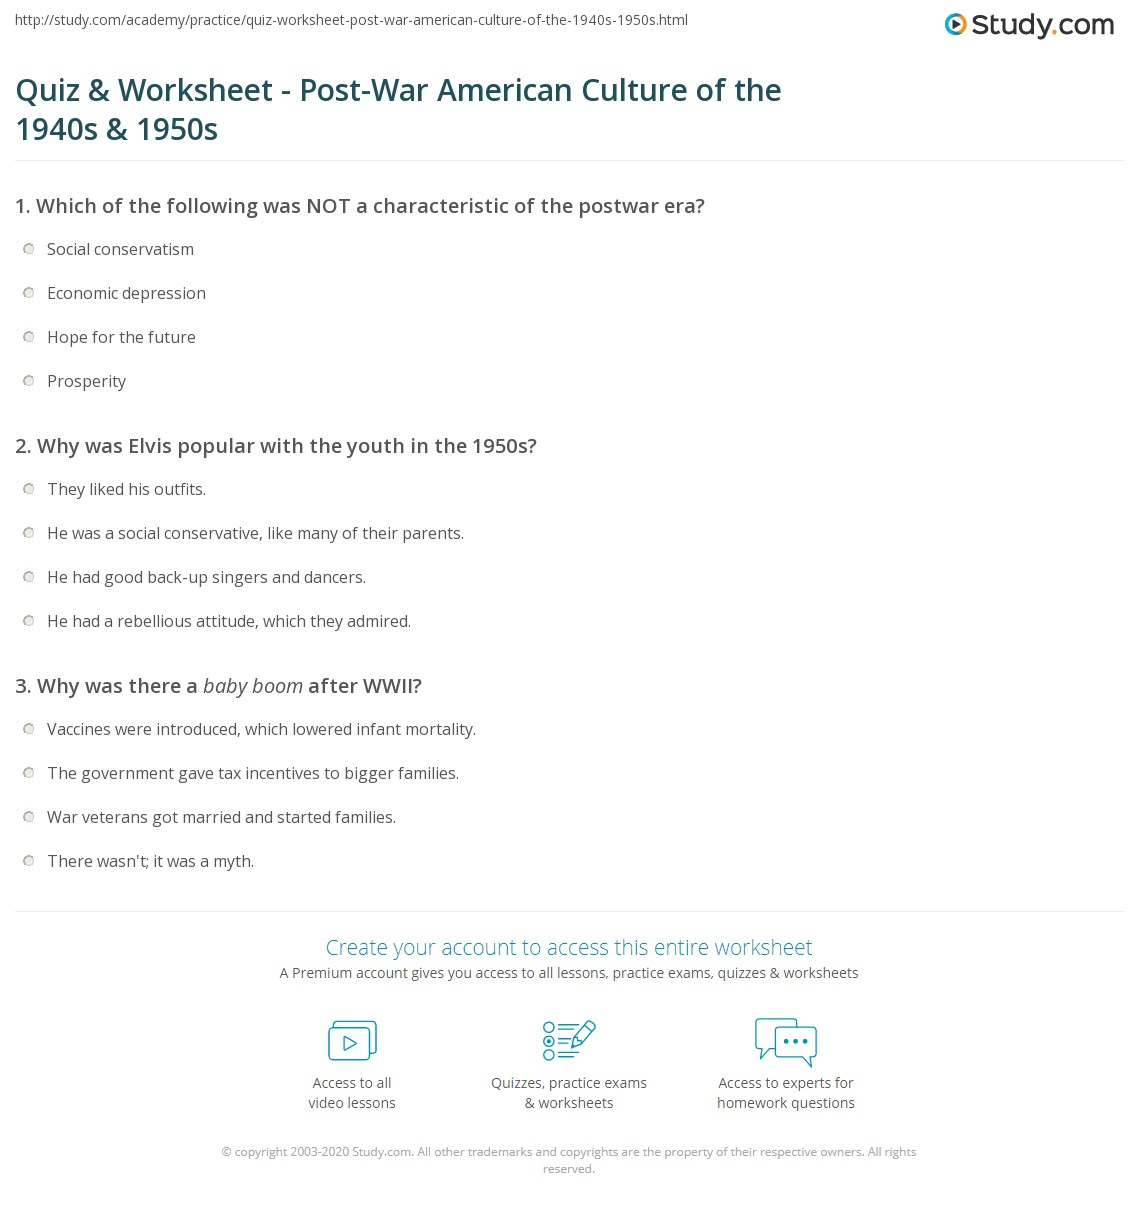 Quiz & Worksheet - Post-War American Culture of the 1940s & 1950s  math worksheets, education, printable worksheets, worksheets for teachers, and alphabet worksheets Currency Conversions Worksheet 2 1394 x 1140